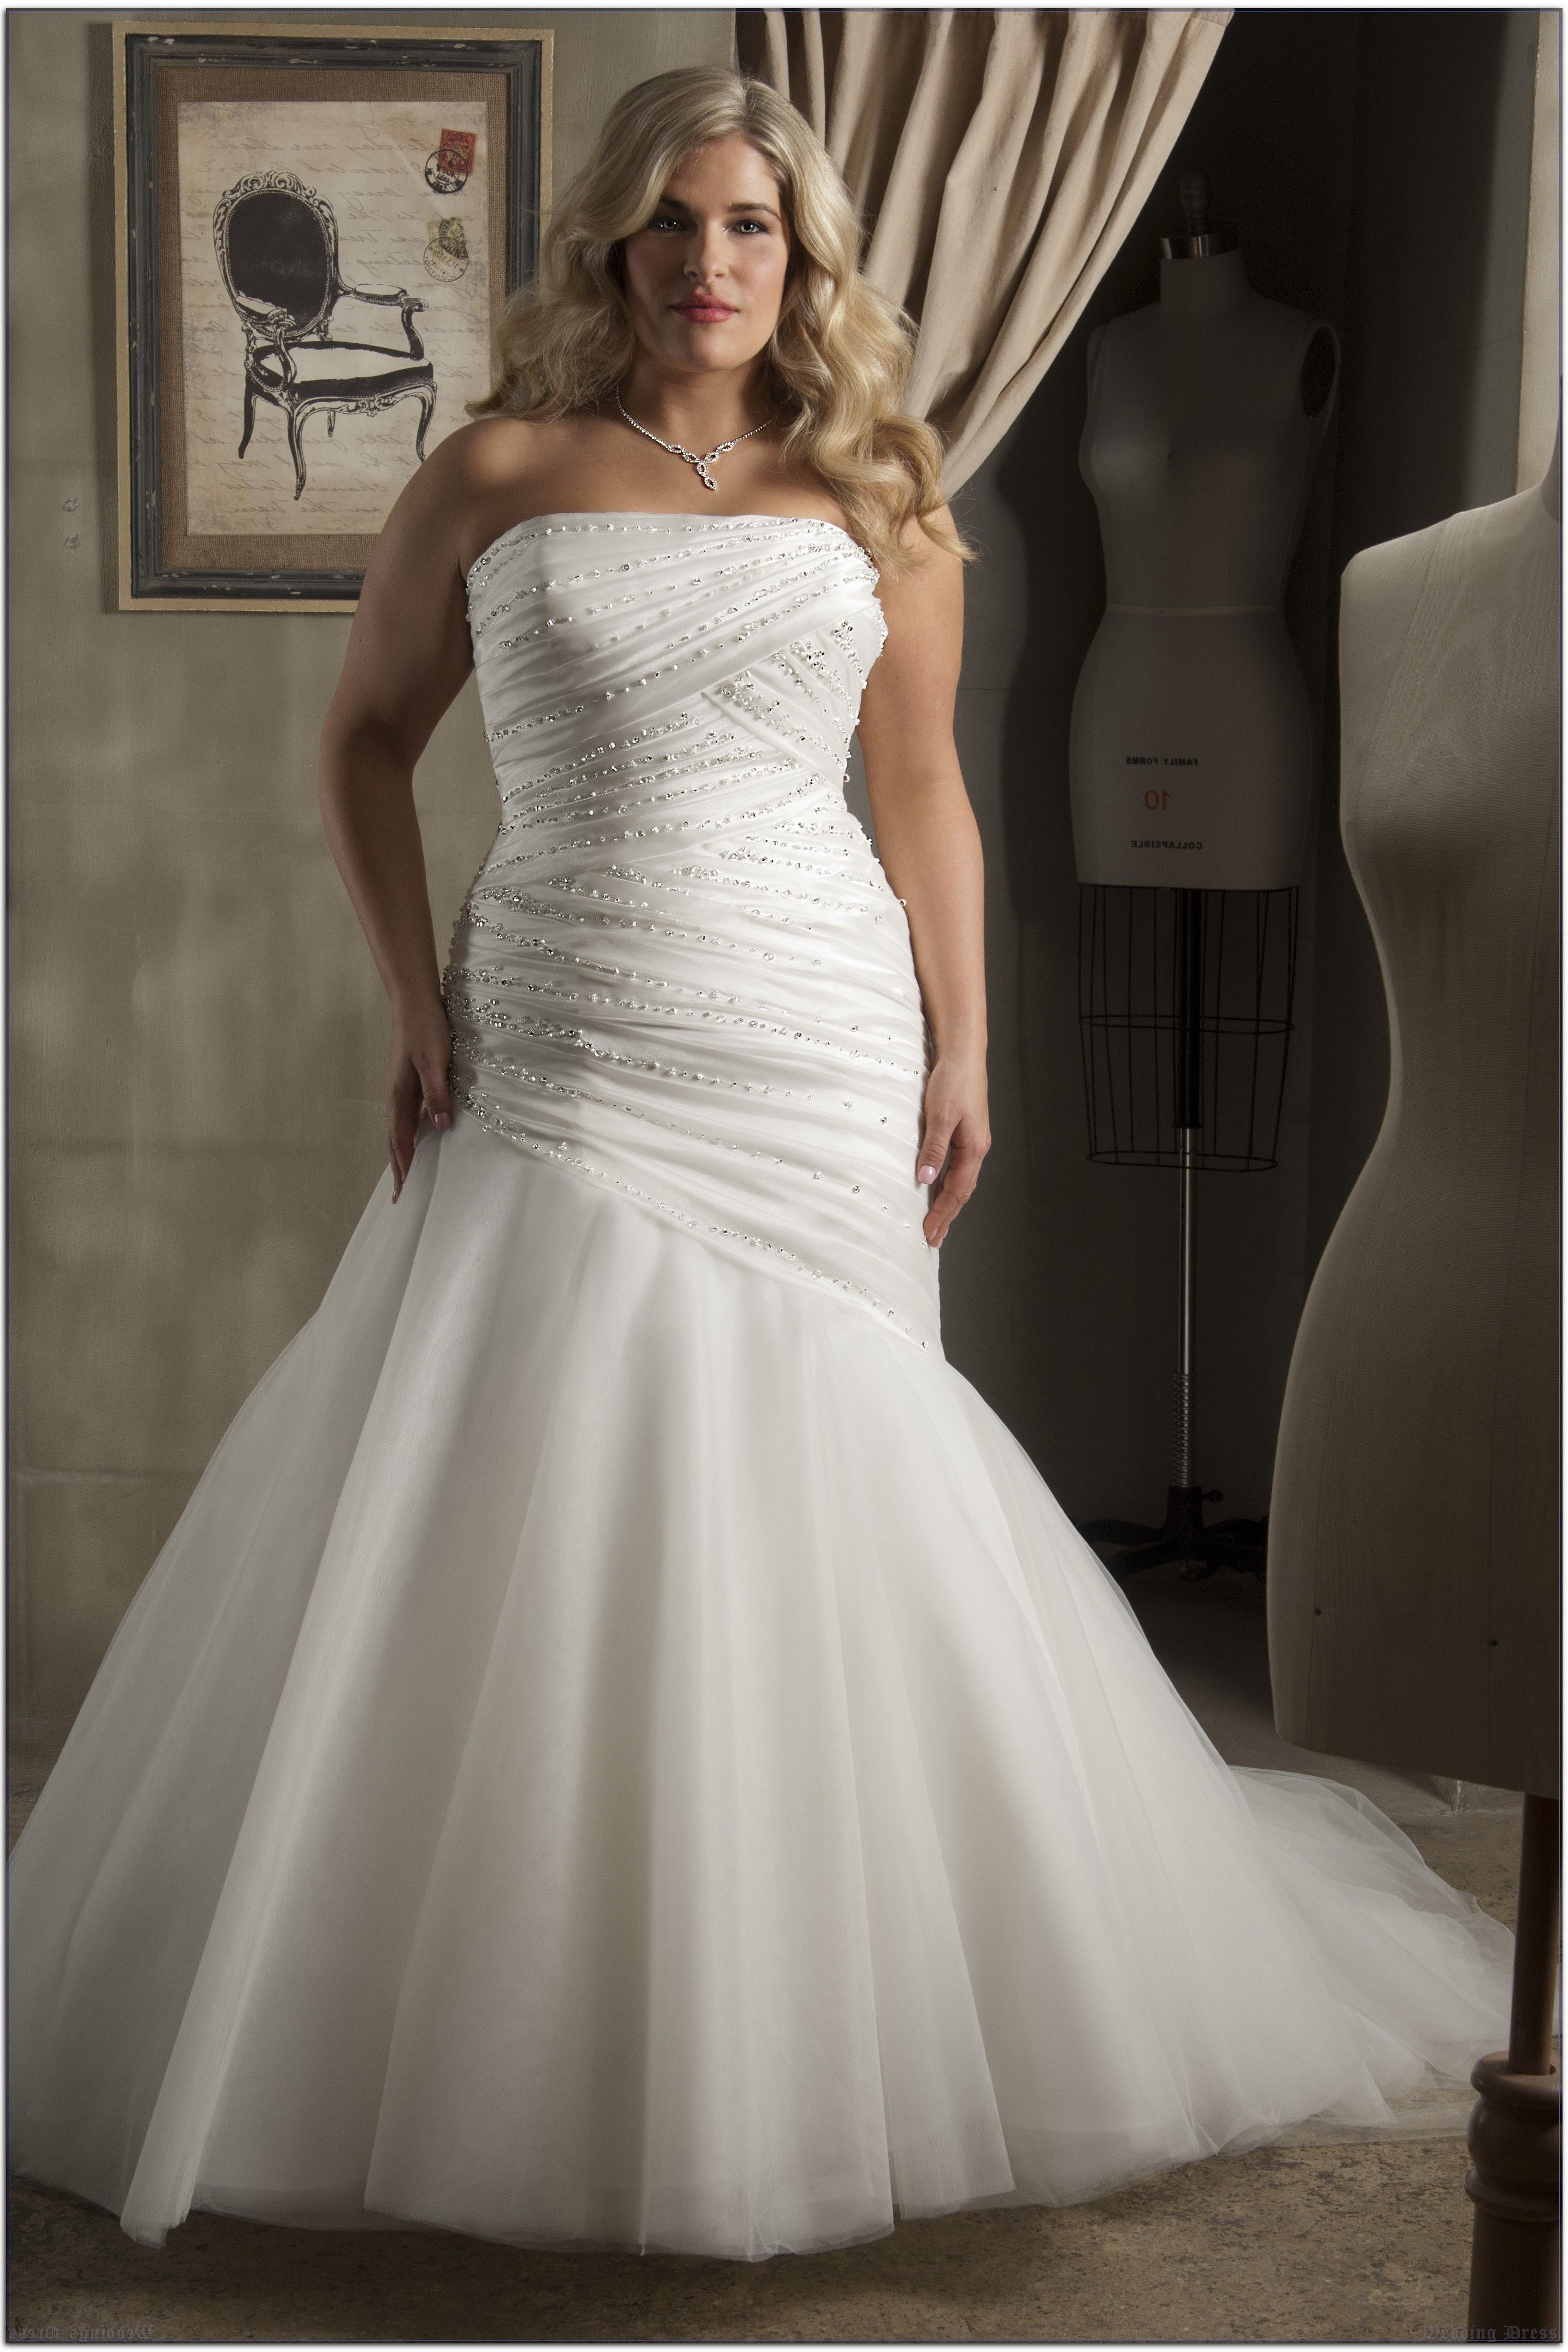 Secrets To Weddings Dress – Even In This Down Economy